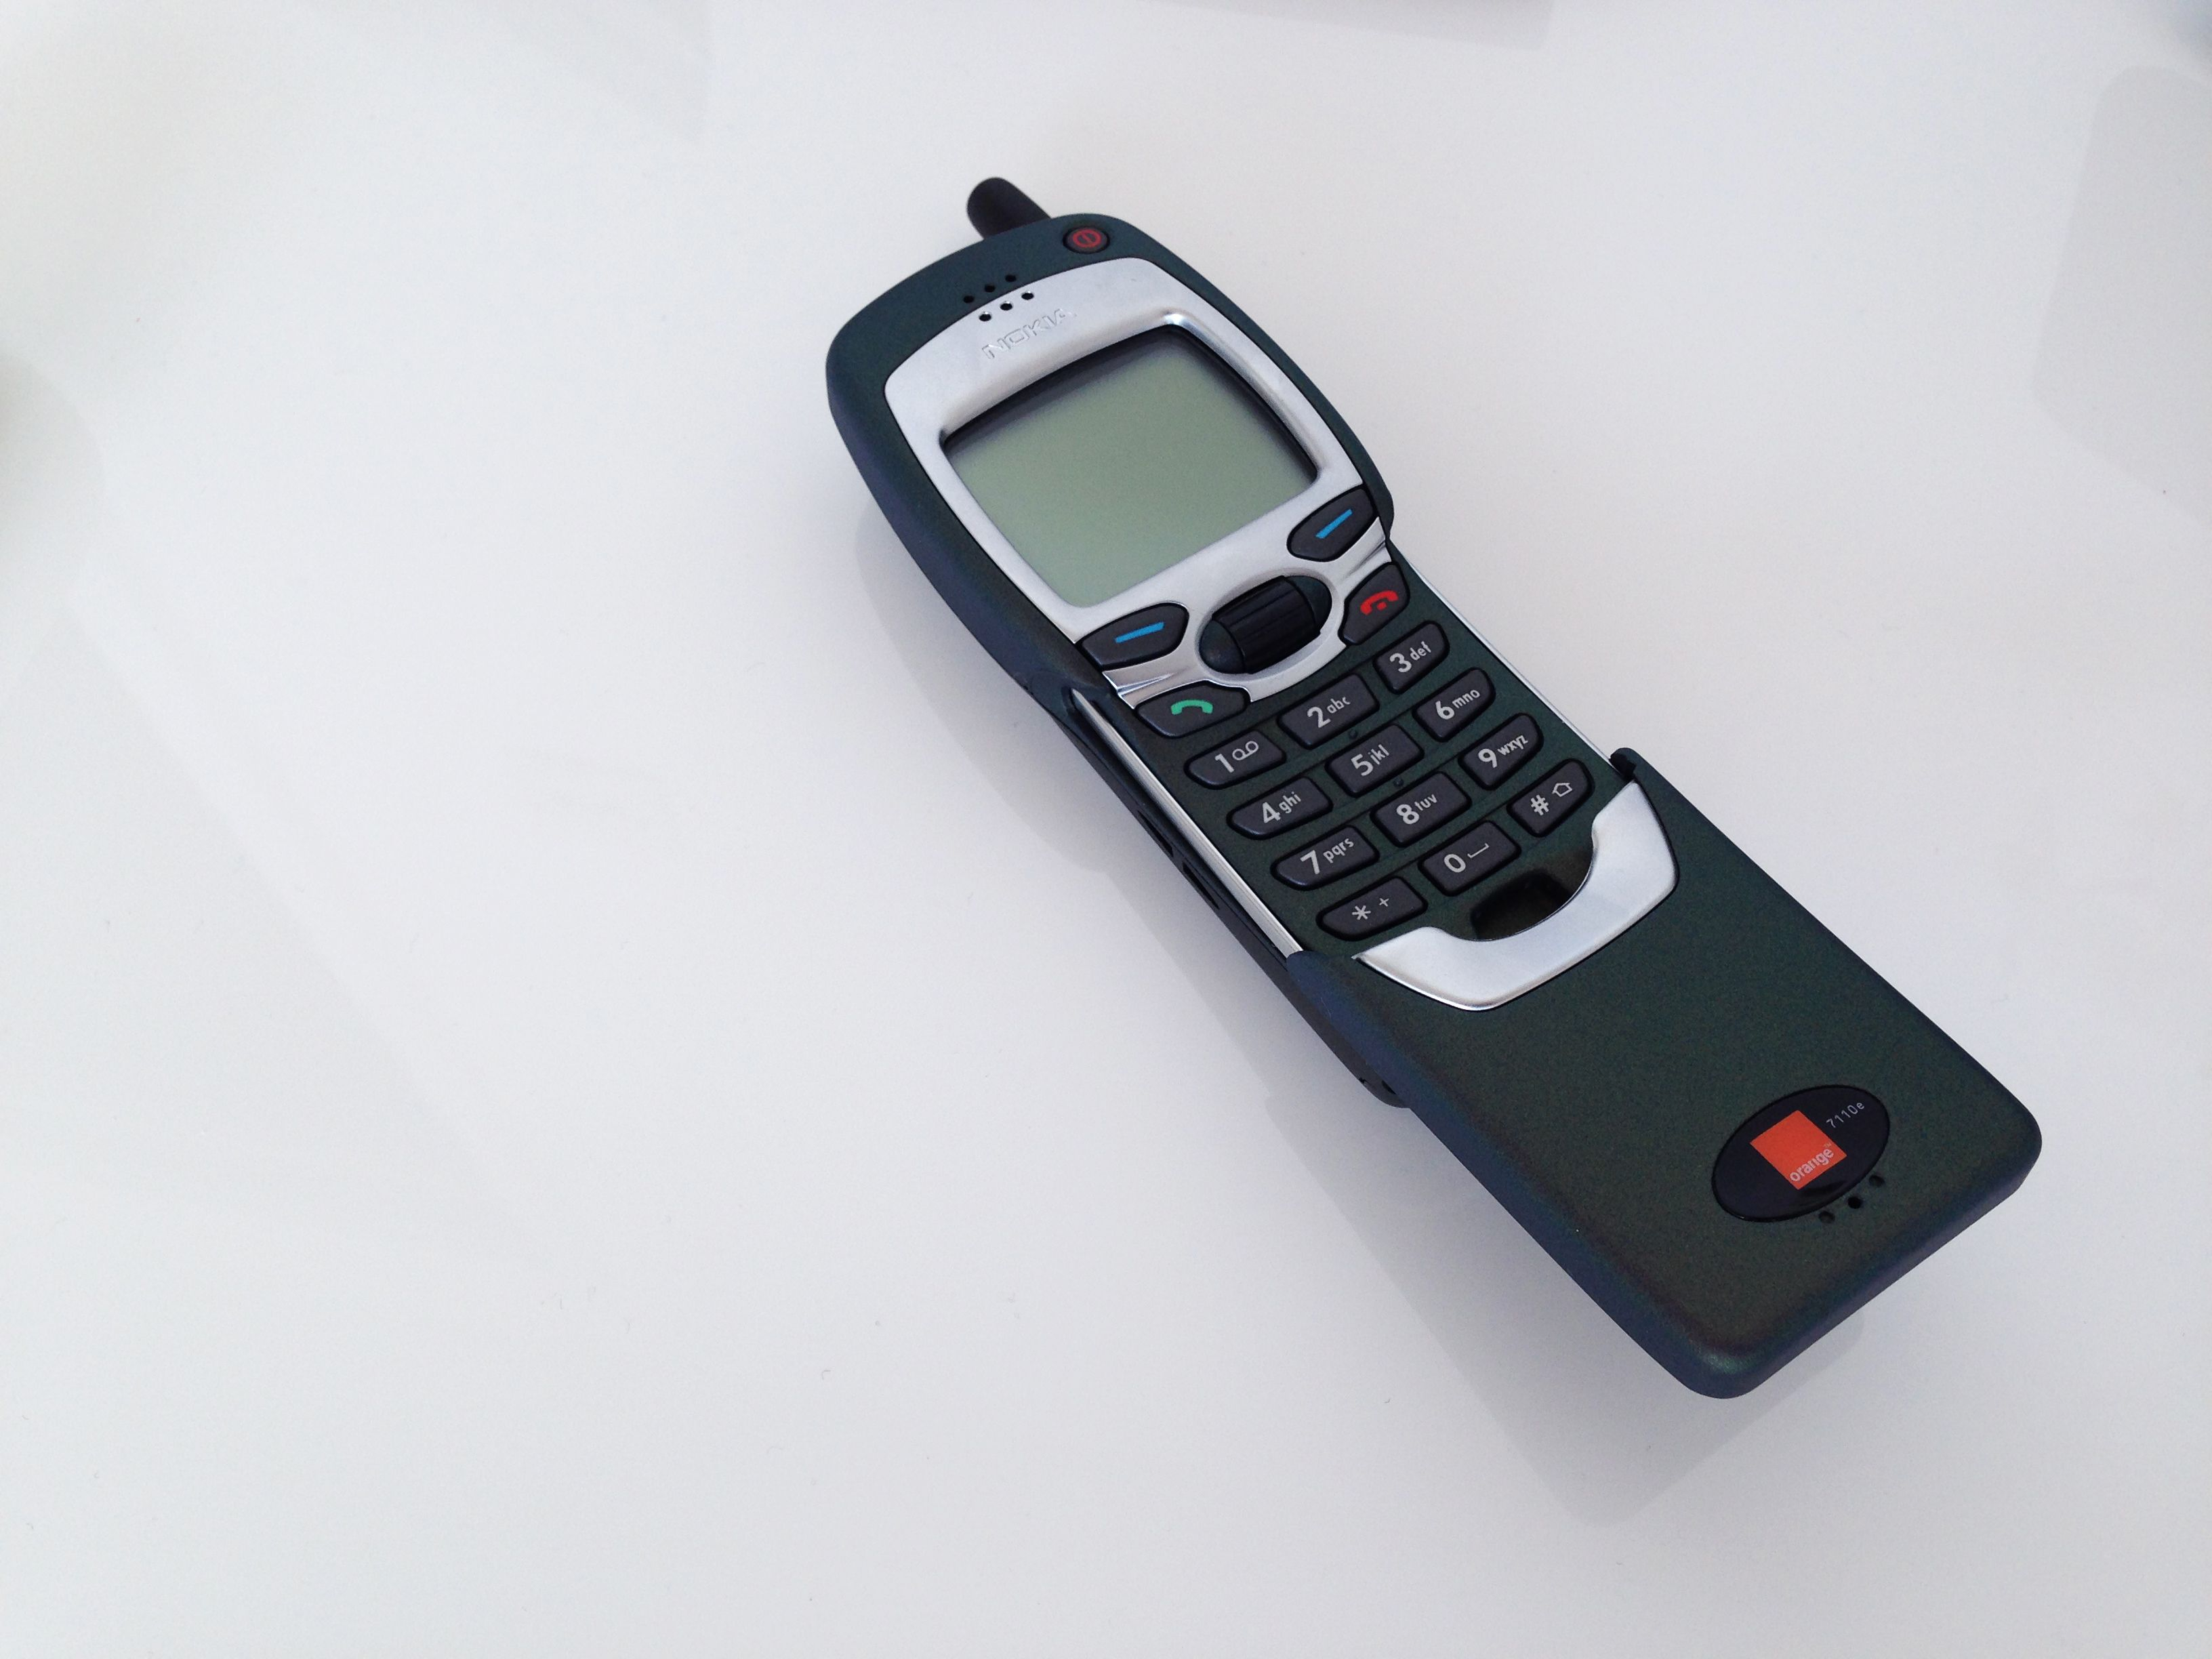 My old Nokia 2G mobile phone know as the Matrix phone